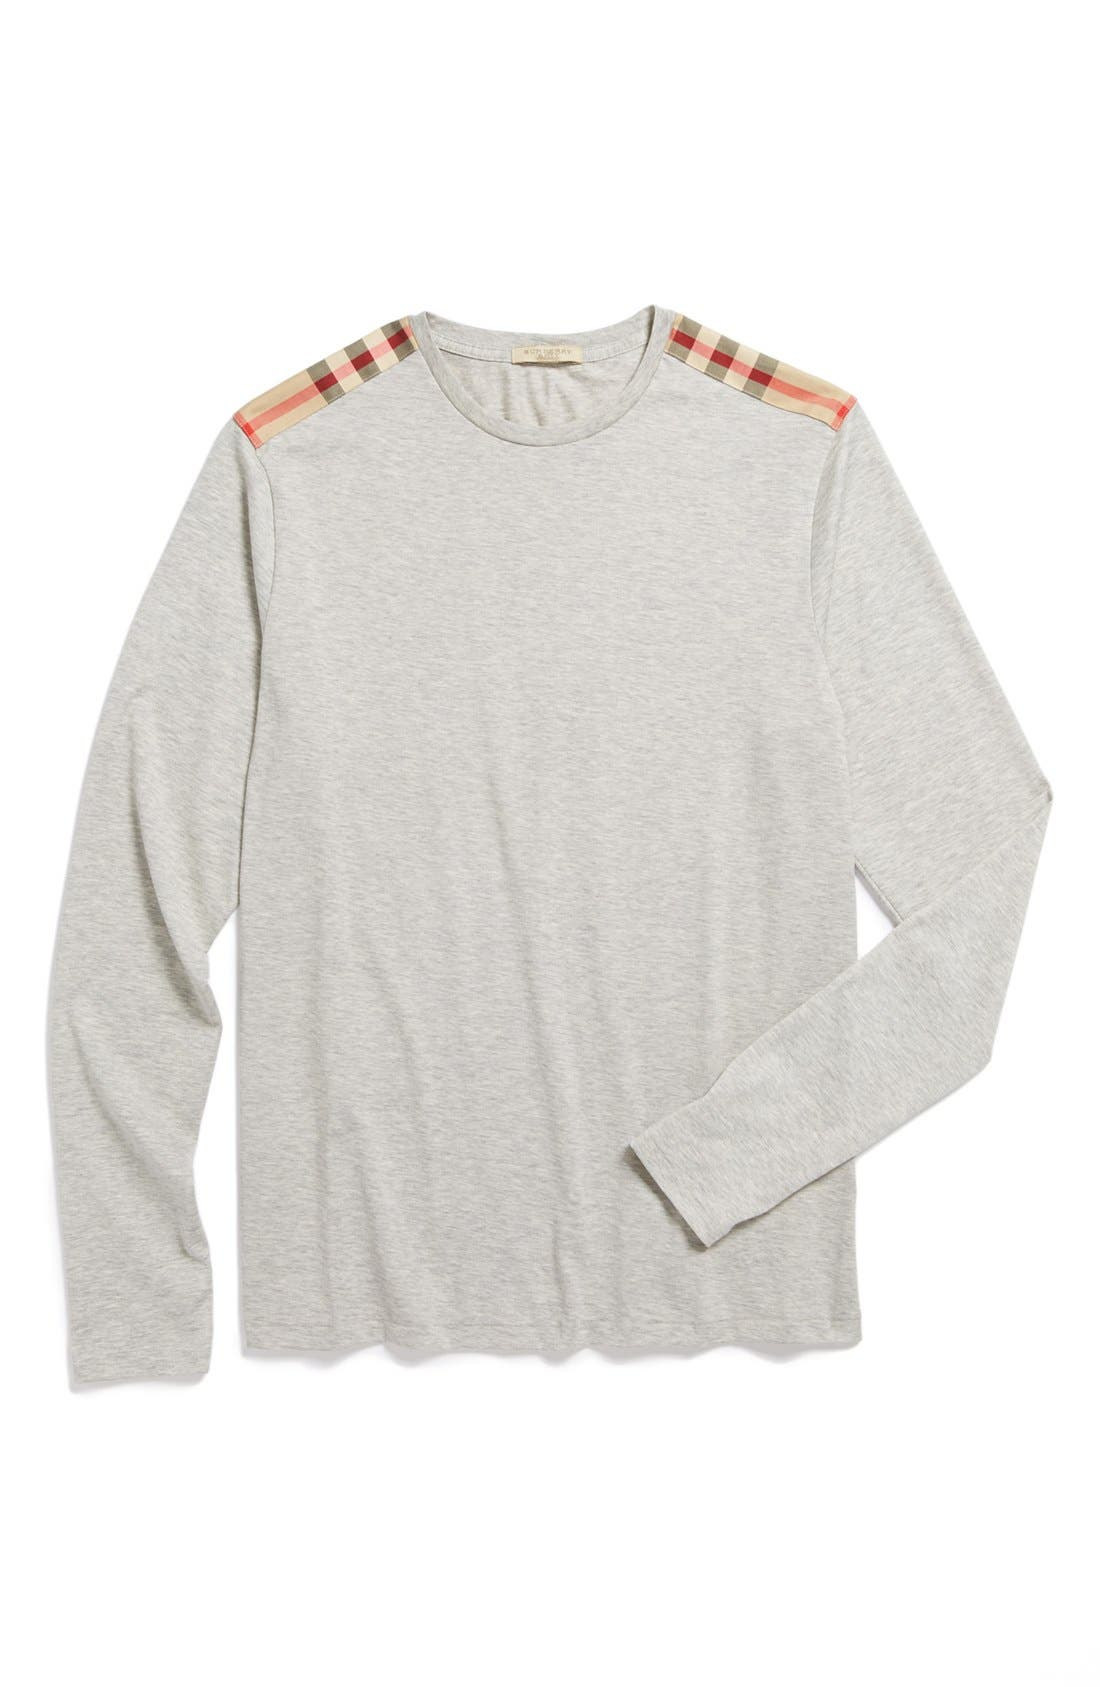 Main Image - Burberry Brit Check Trim Crewneck T-Shirt